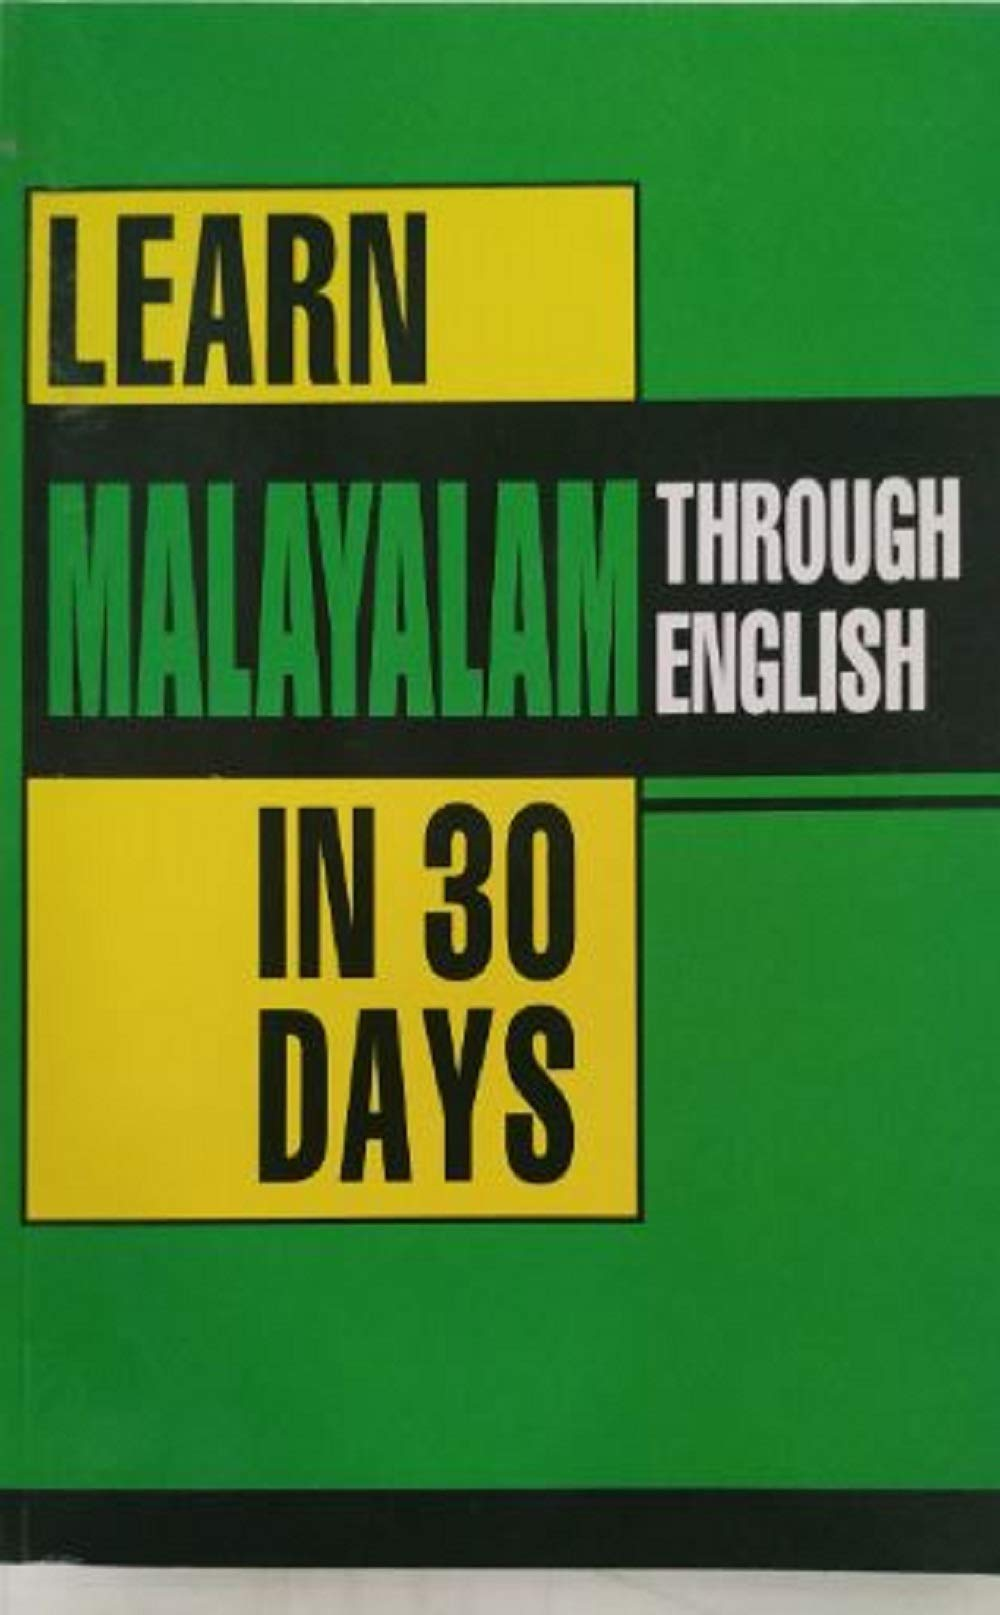 Buy Learn Malayalam in 30 Days Through English Book Online at Low